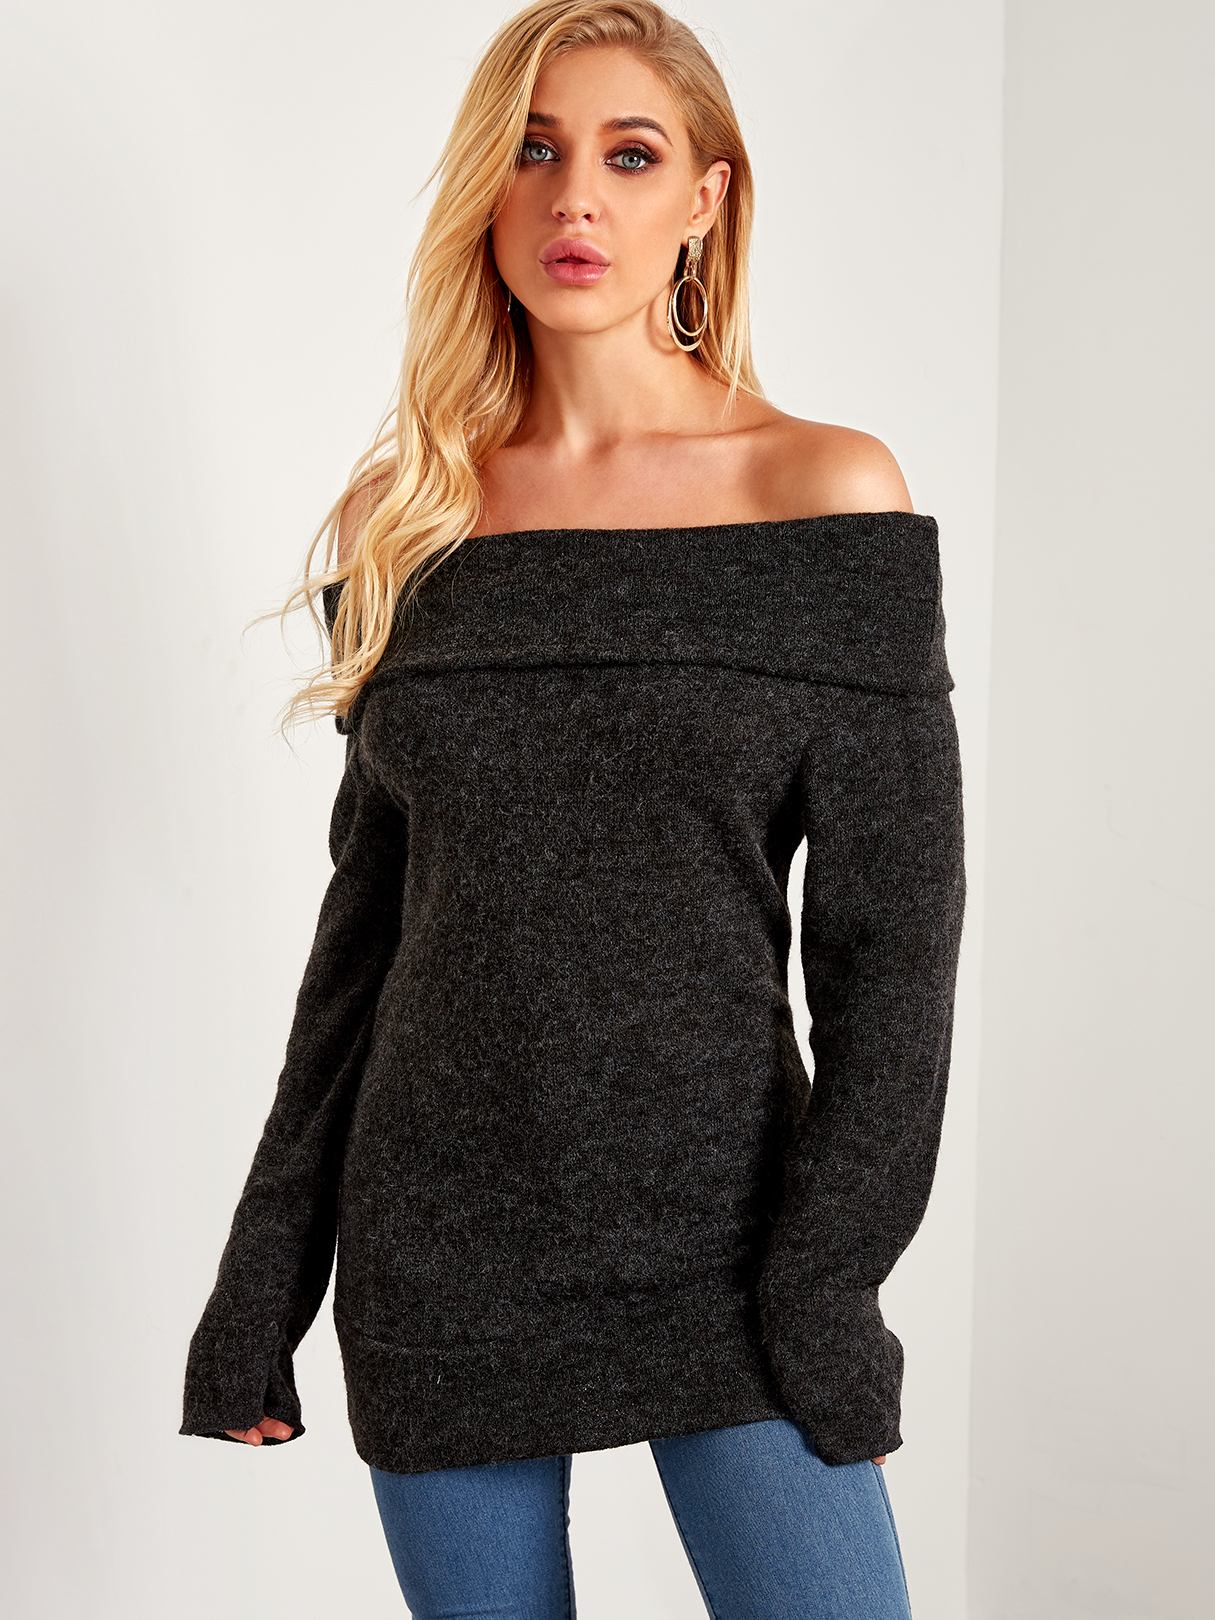 Black Backless Design Plain Off The Shoulder Overlay Long Sleeves Sweaters